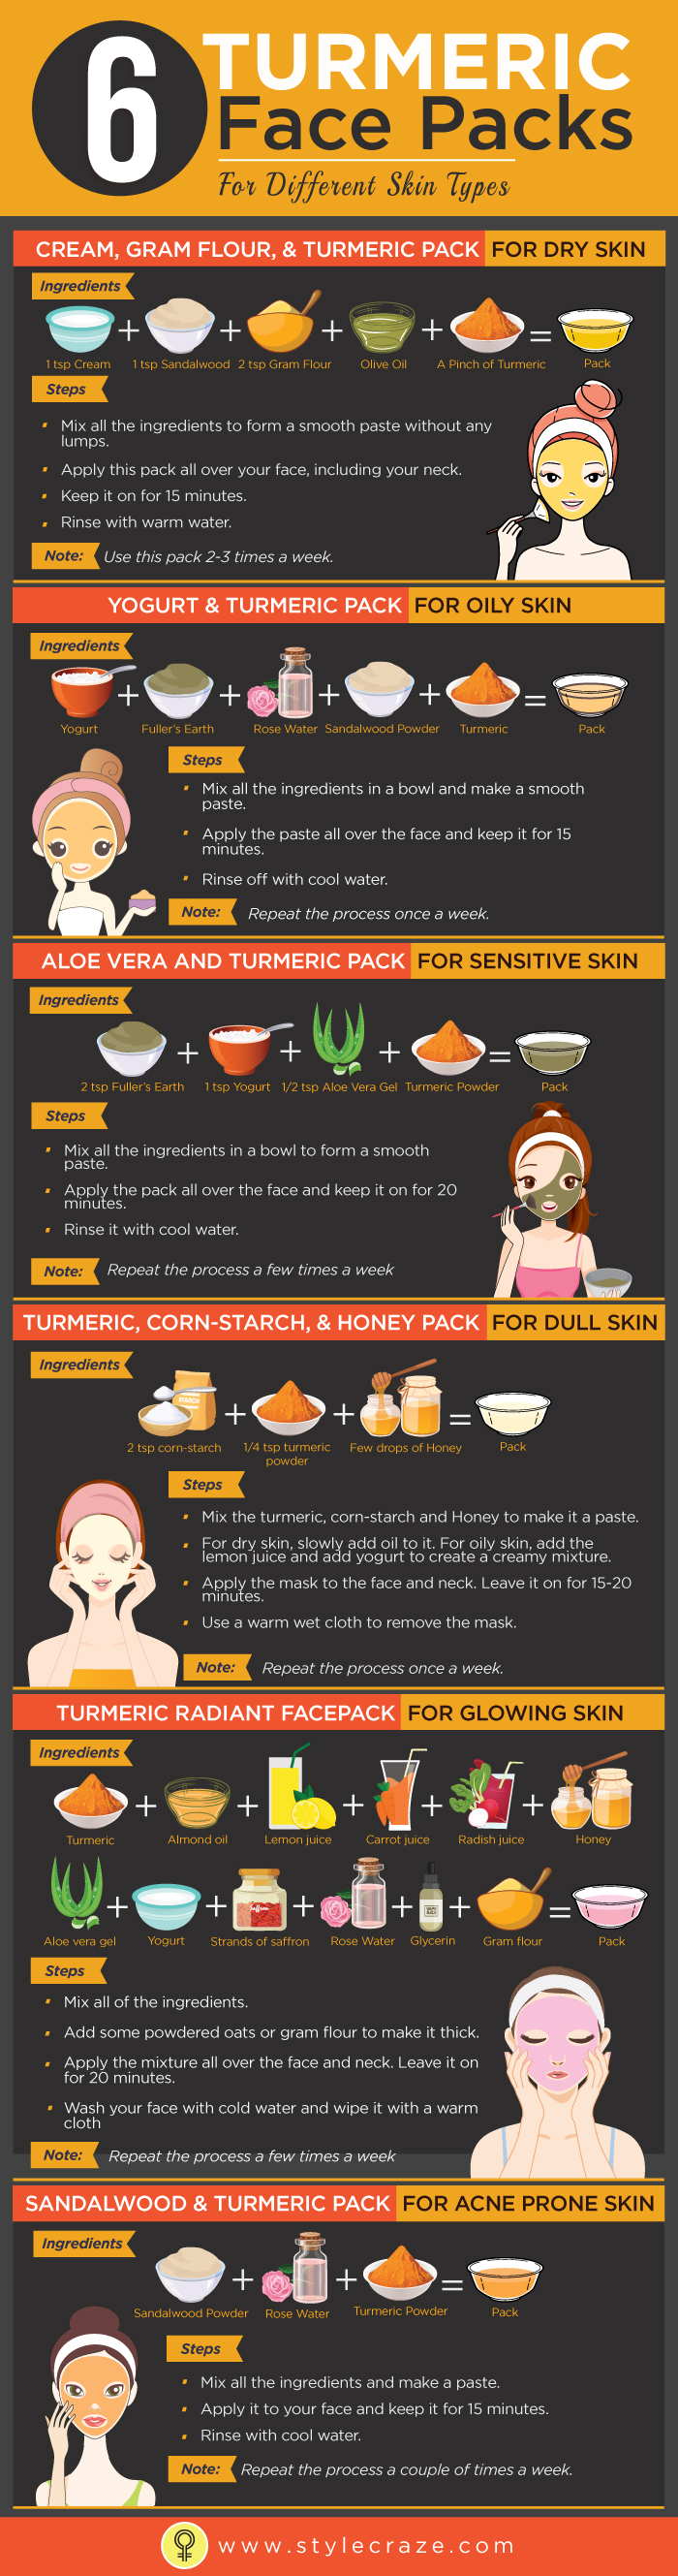 How to Purify and Cleanse Skin with Turmeric Face Packs - Infographic